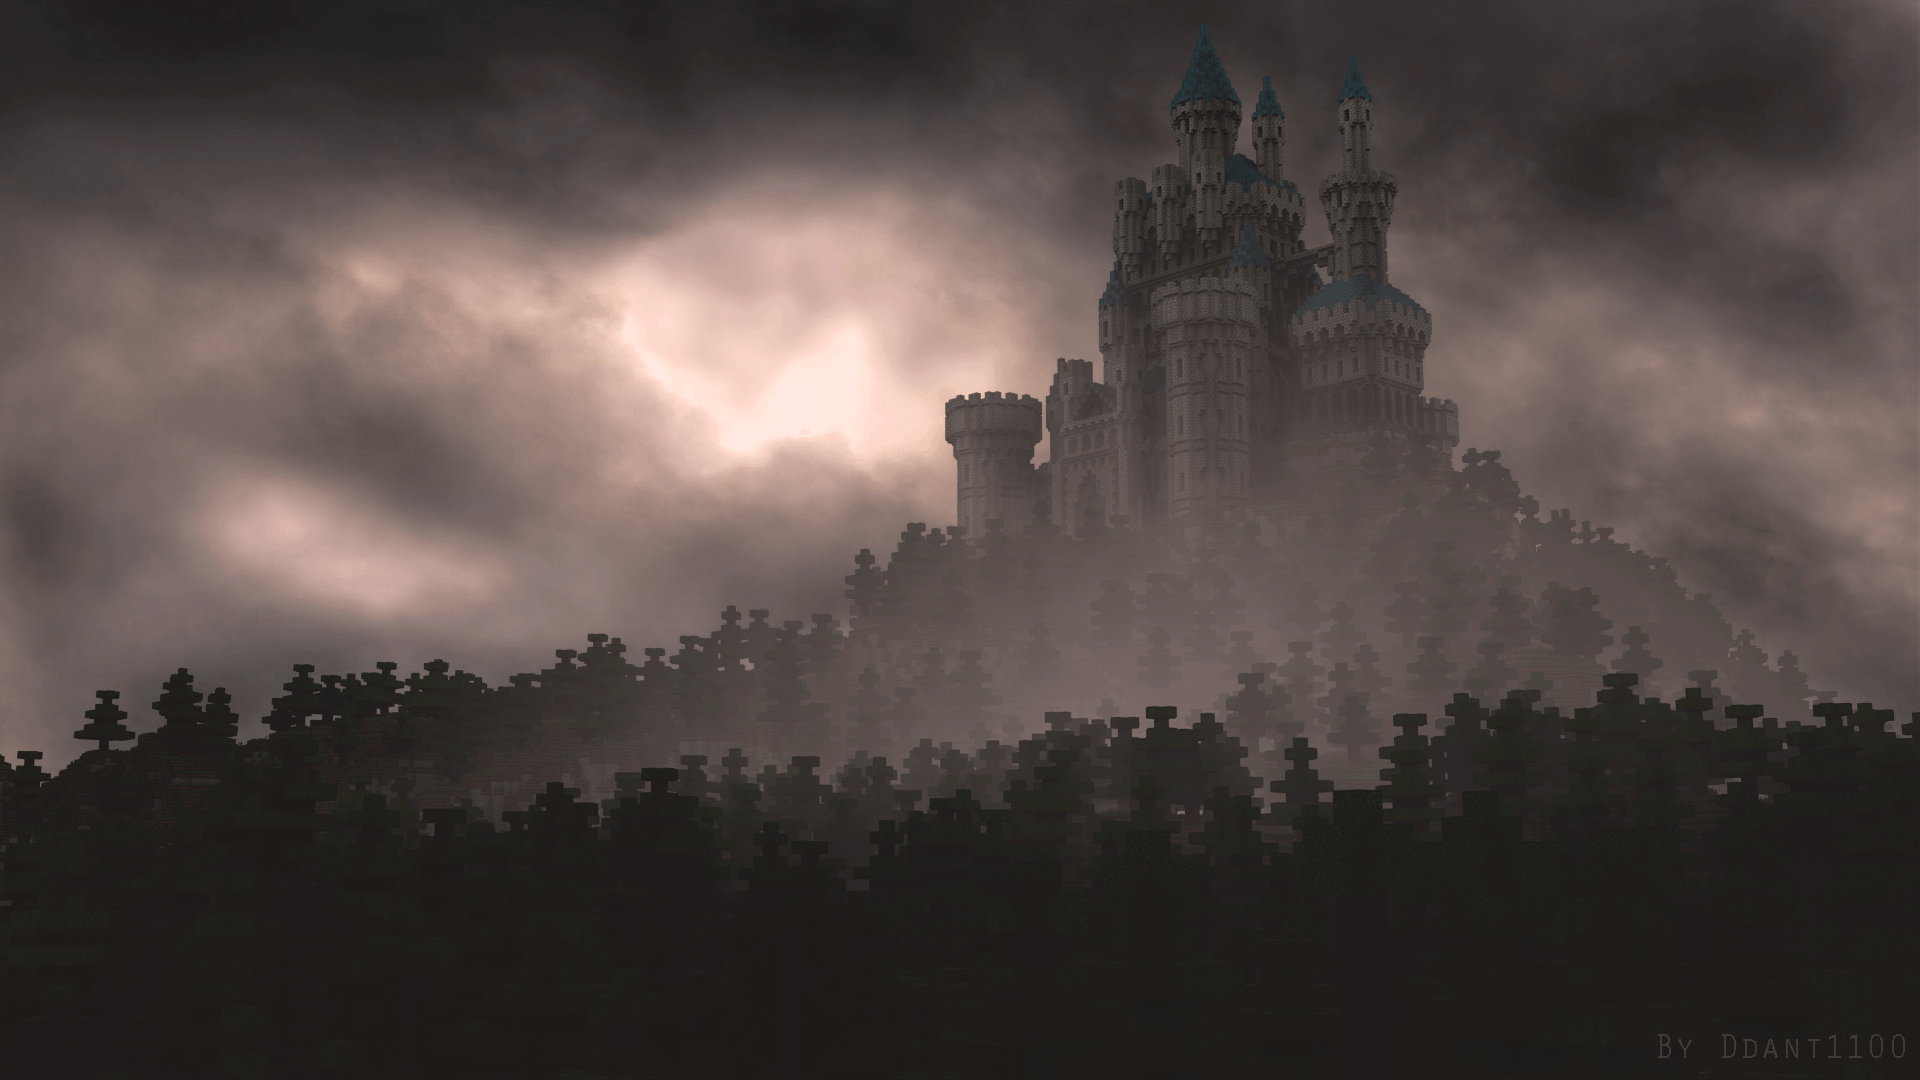 castle_on_the_hill__wallpaper_hd__by_ddant1100-d7bhabj